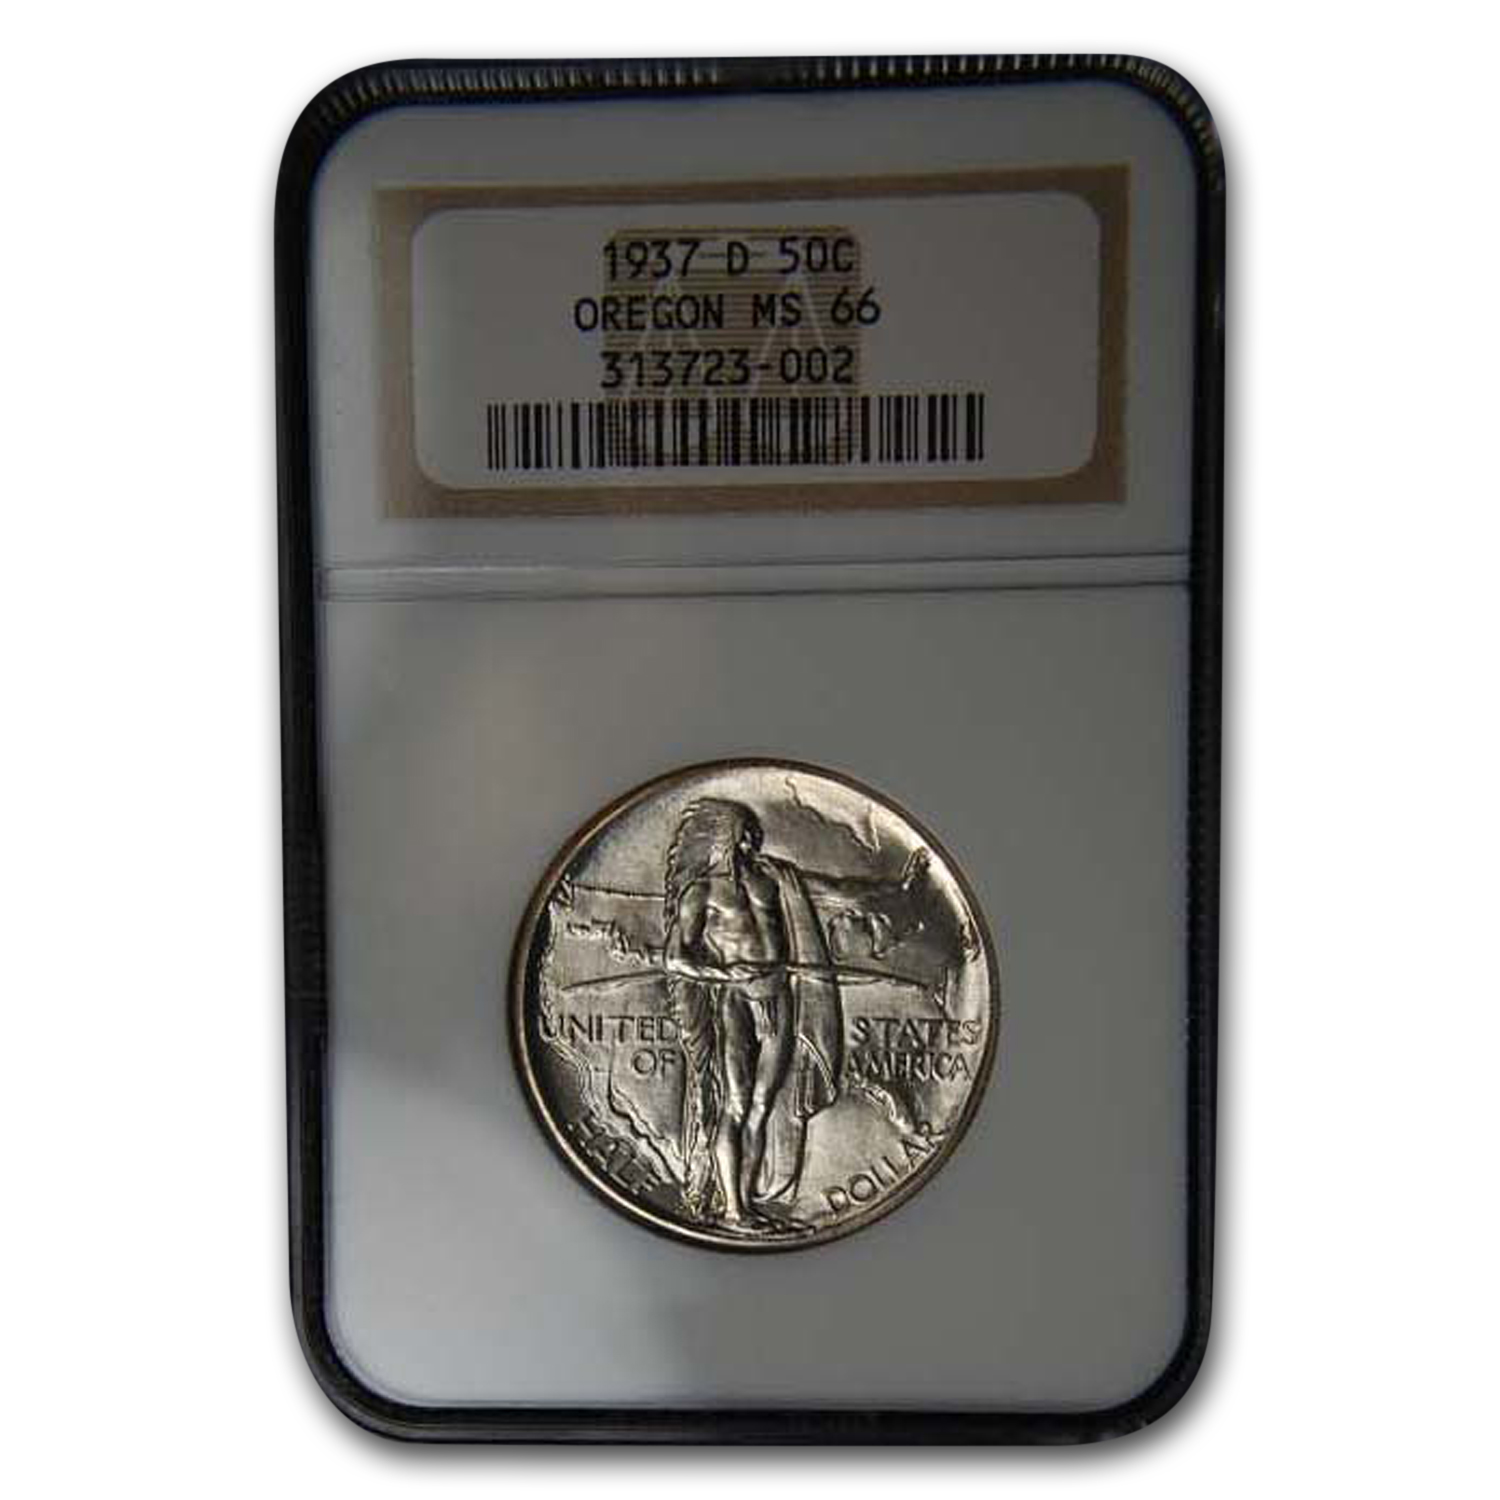 1937-D Oregon Commemorative MS-66 NGC